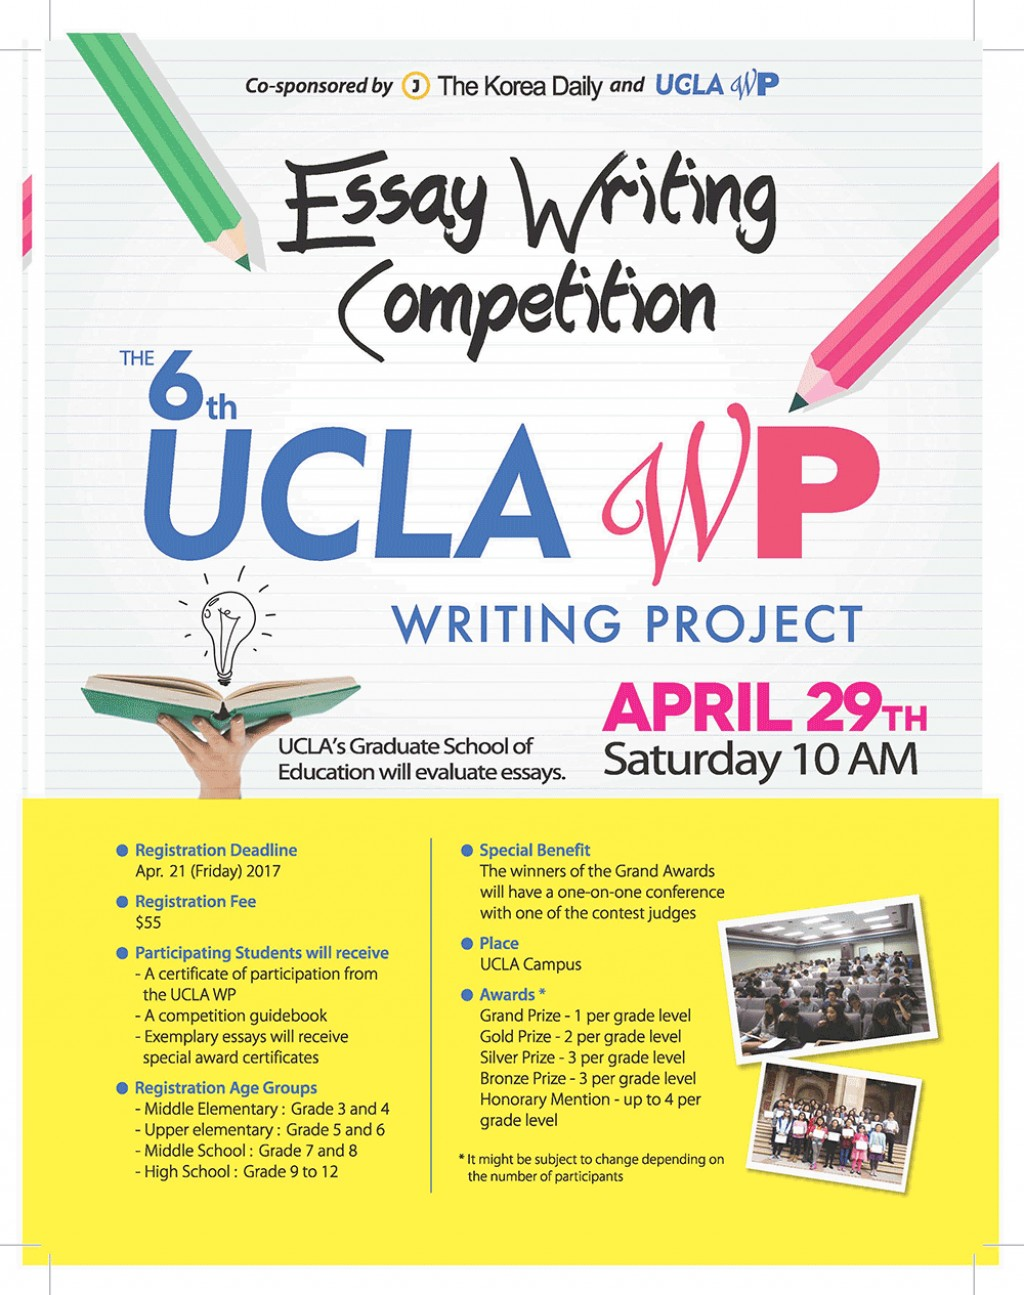 008 Essay Writing Contest Example Uclakoreandaily Incredible Competition For College Students By Essayhub Sample Mechanics Large